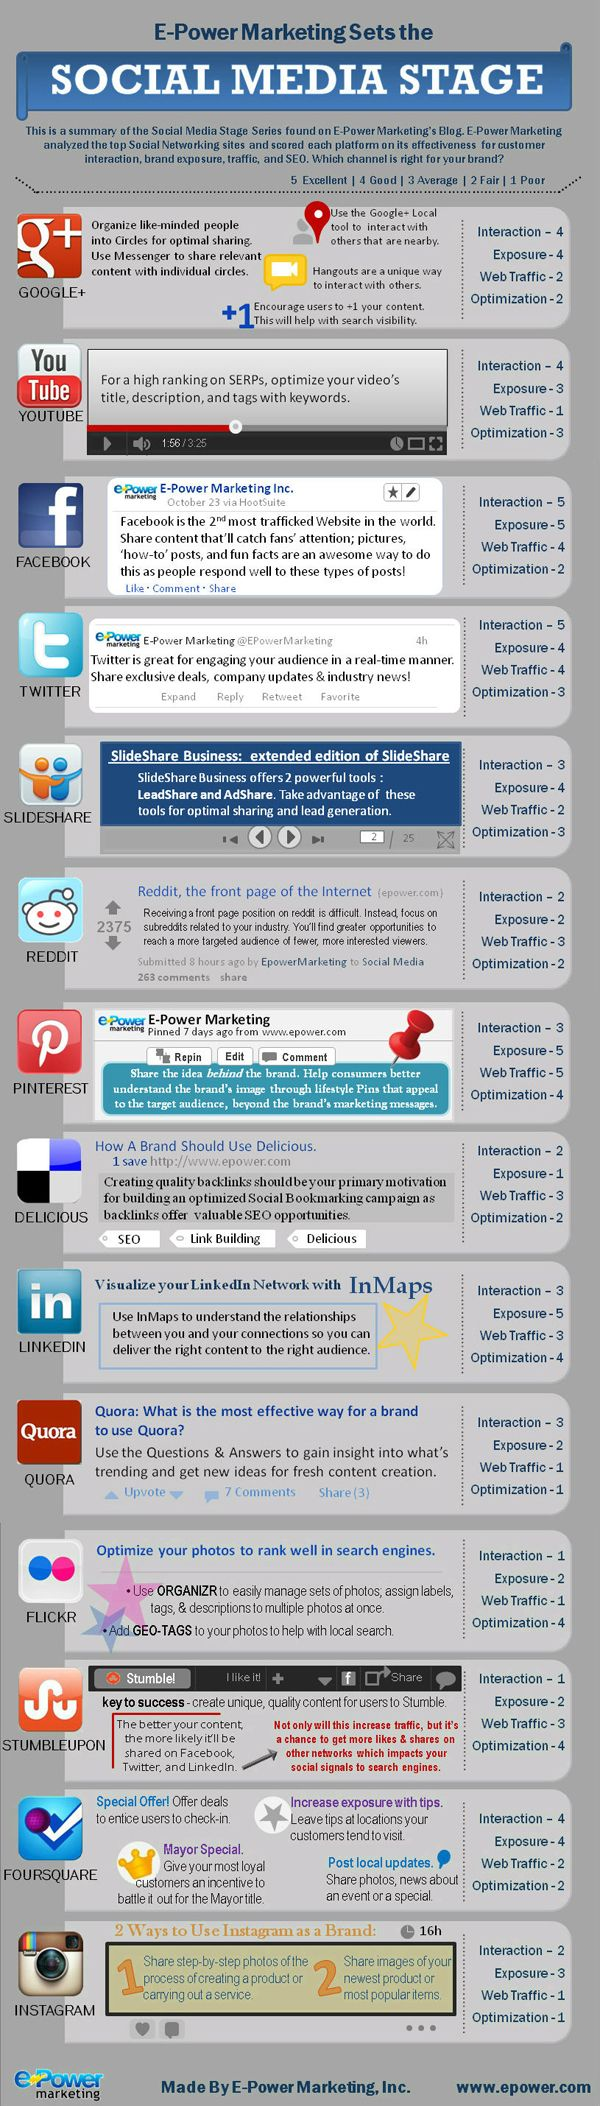 Effectiveness Comparison Of Top Social Media Networks [Infographic]